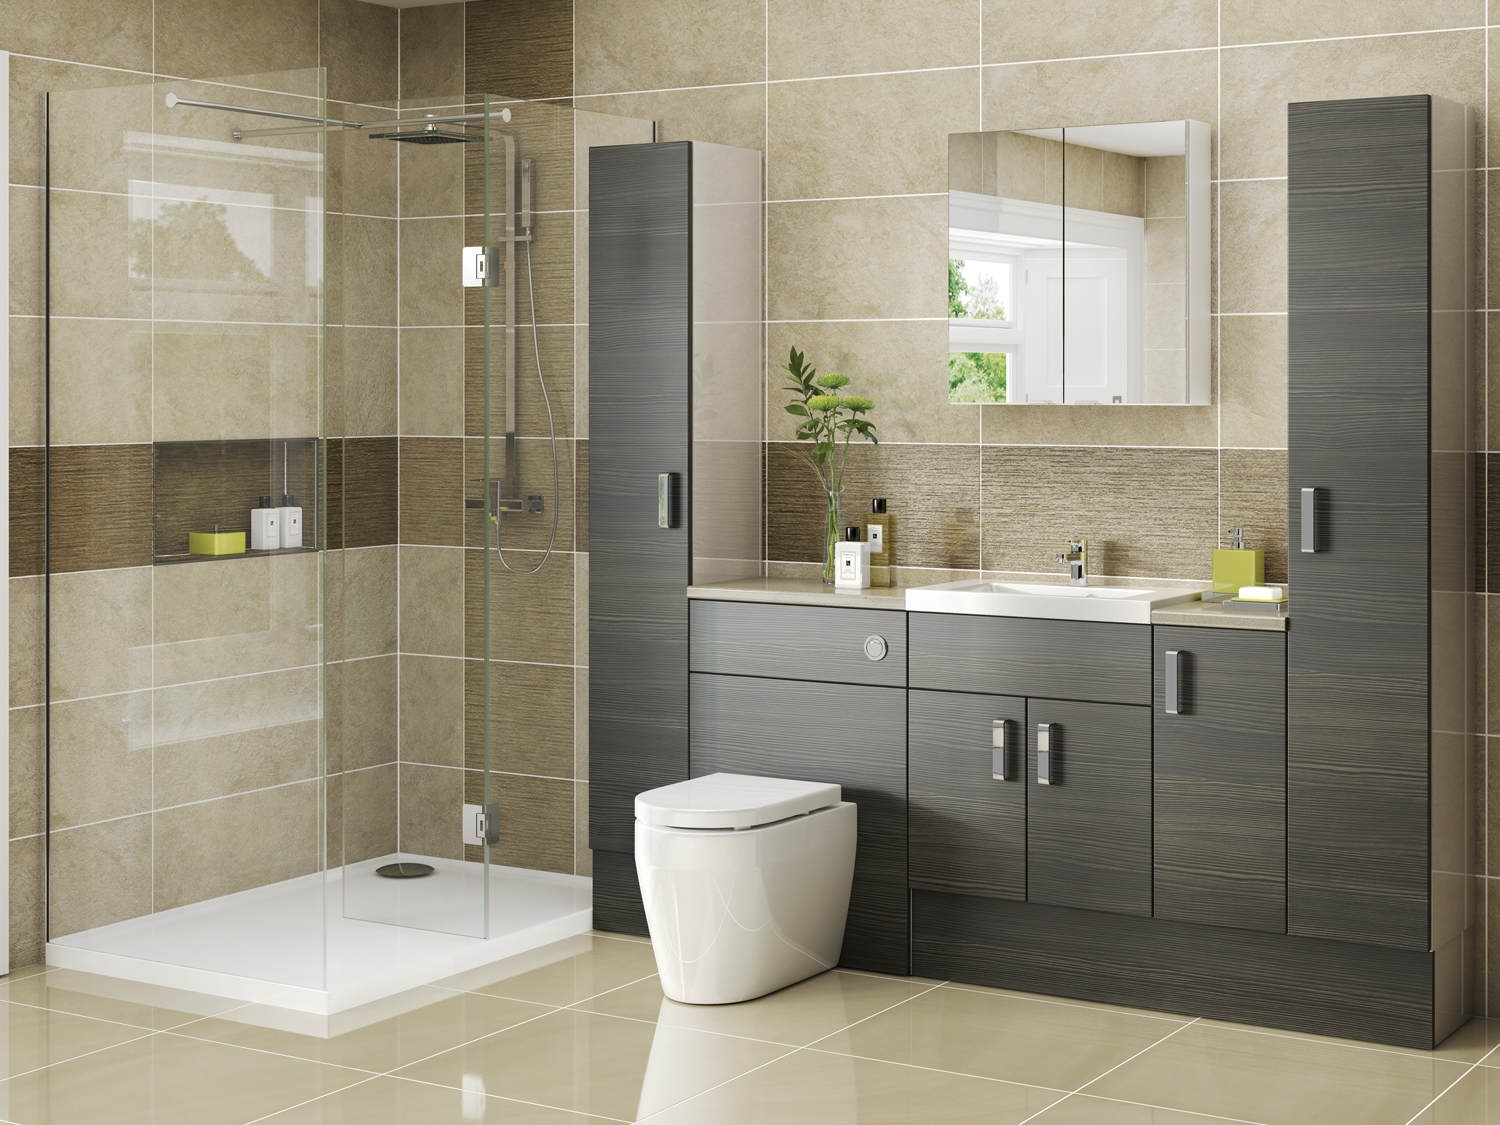 A Selection Of Our Bathroom Styles: